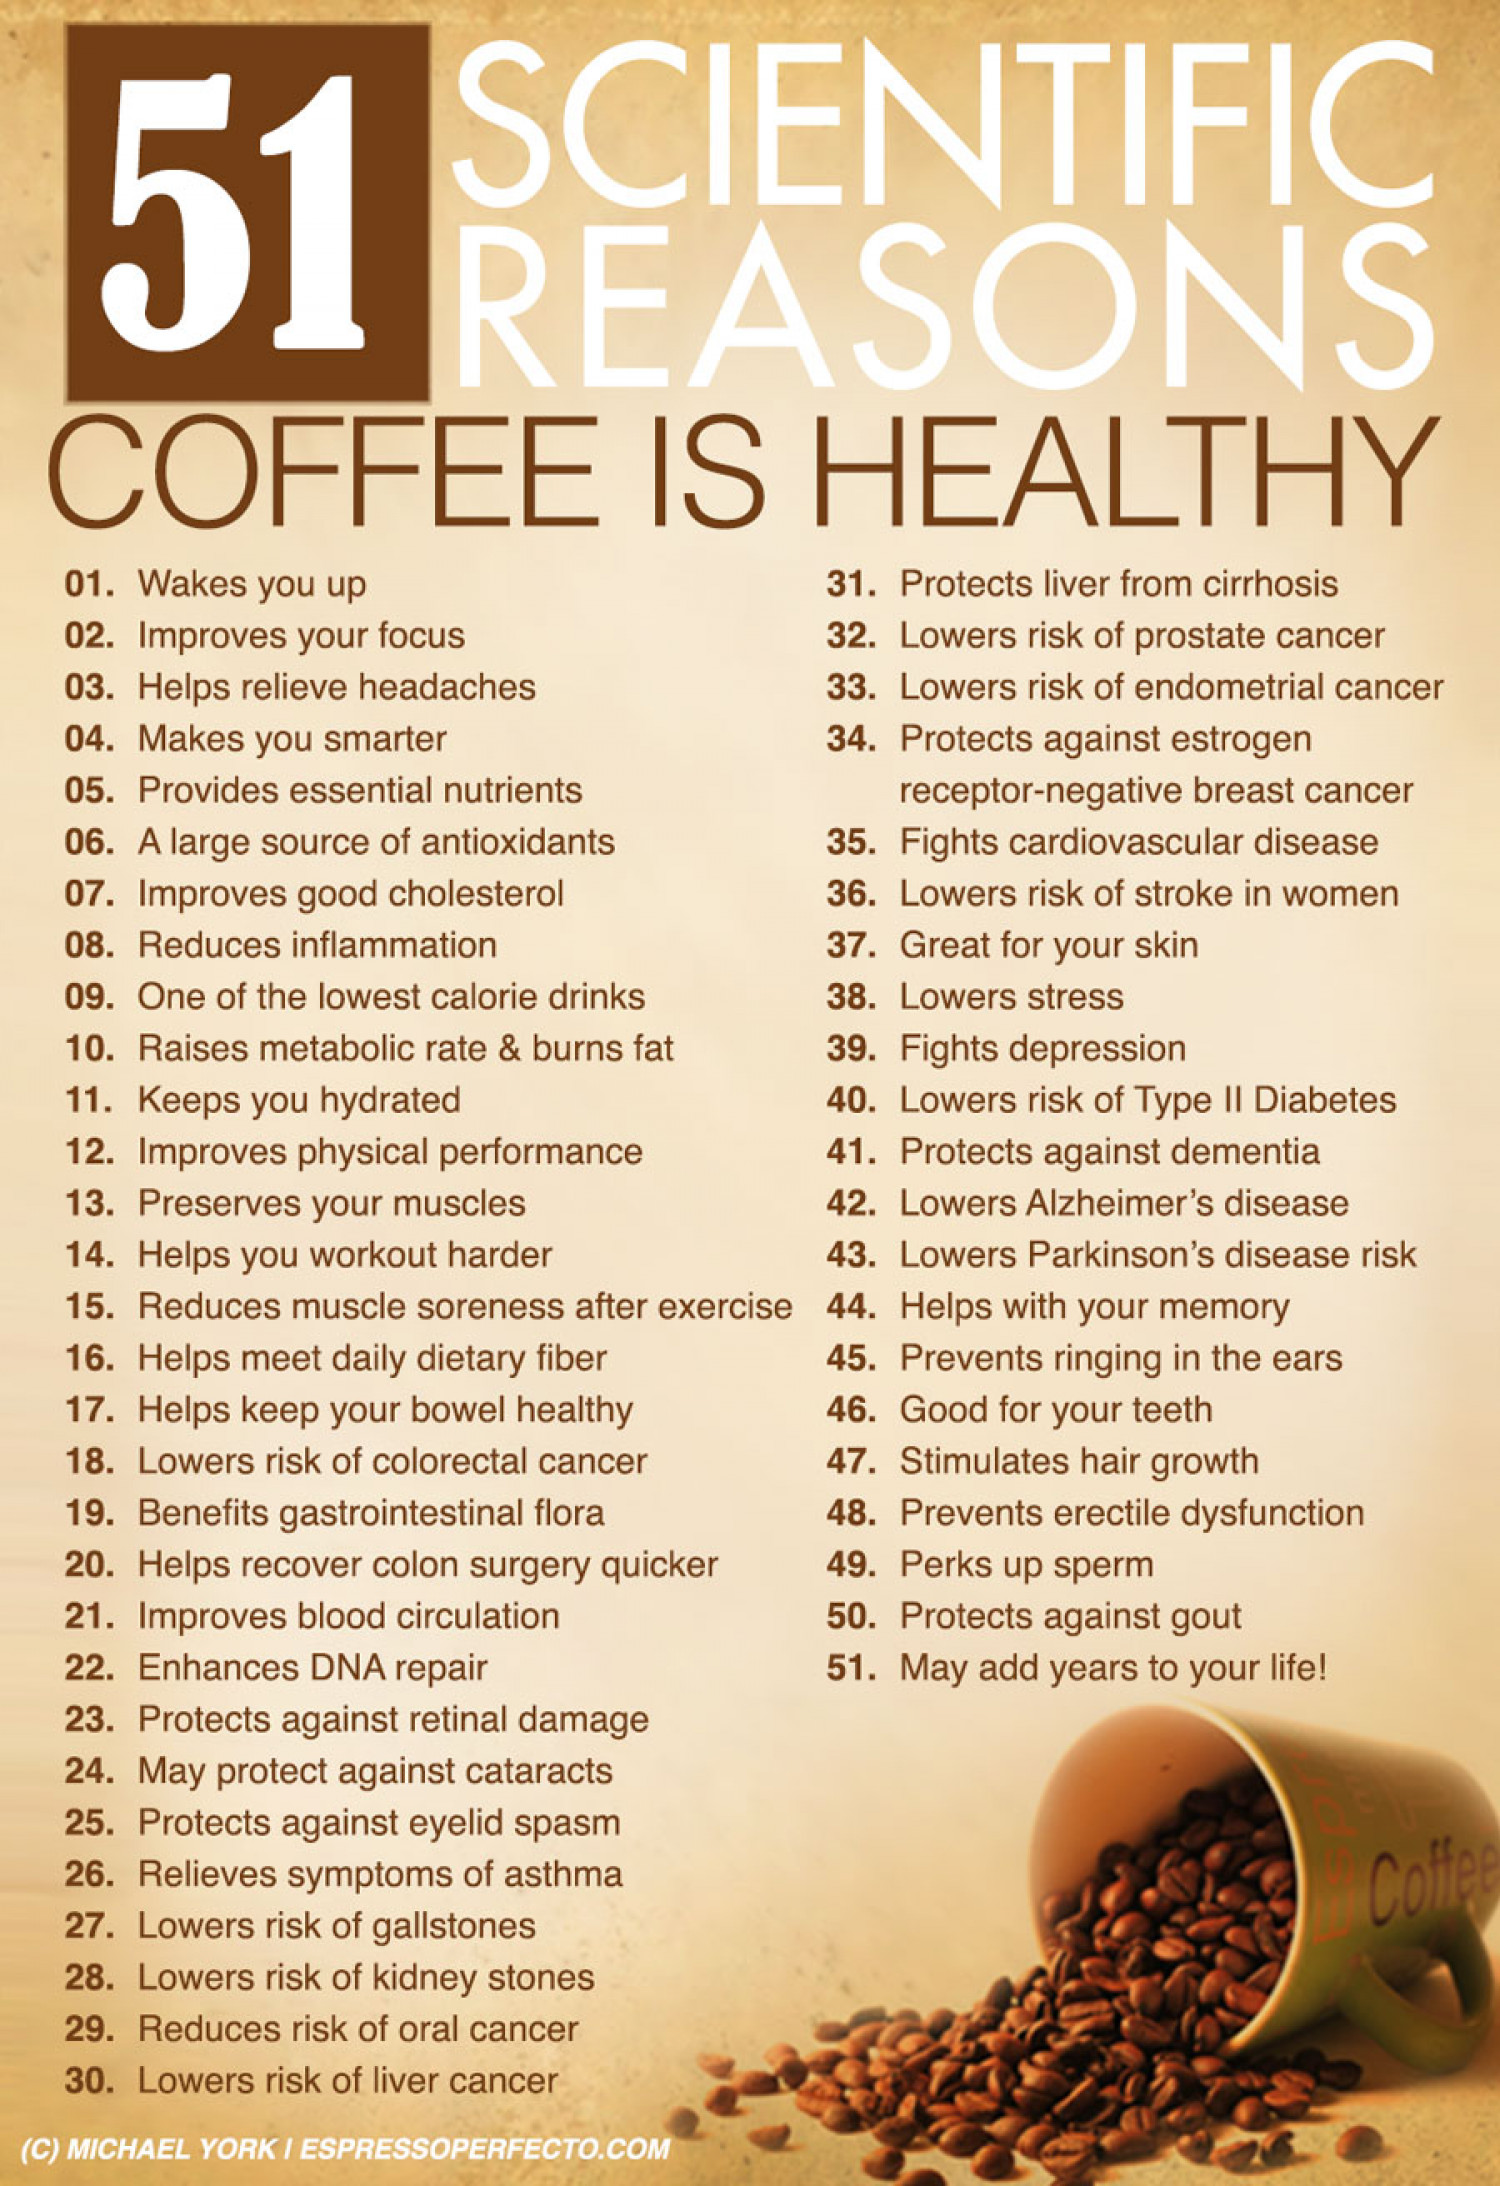 51 Scientific Reasons Coffee is Healthy Infographic